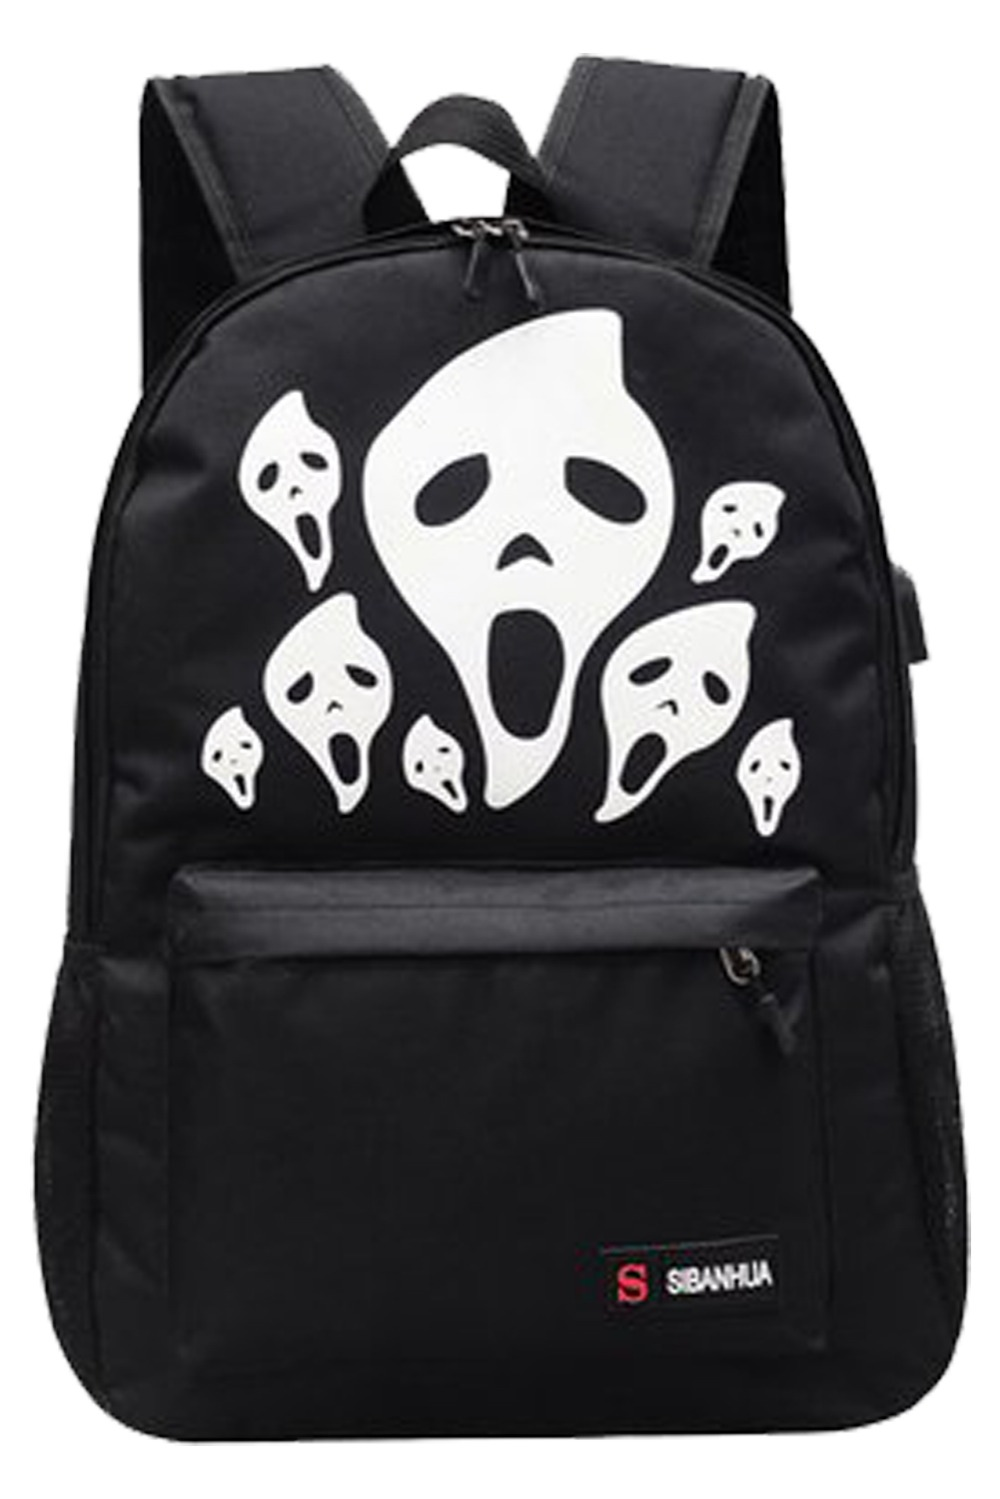 2017 3D Skeleton Printing Backpack Halloween Luminous Shoulder Bag Light Girls boy School Bags for Teenagers Printing Backpack